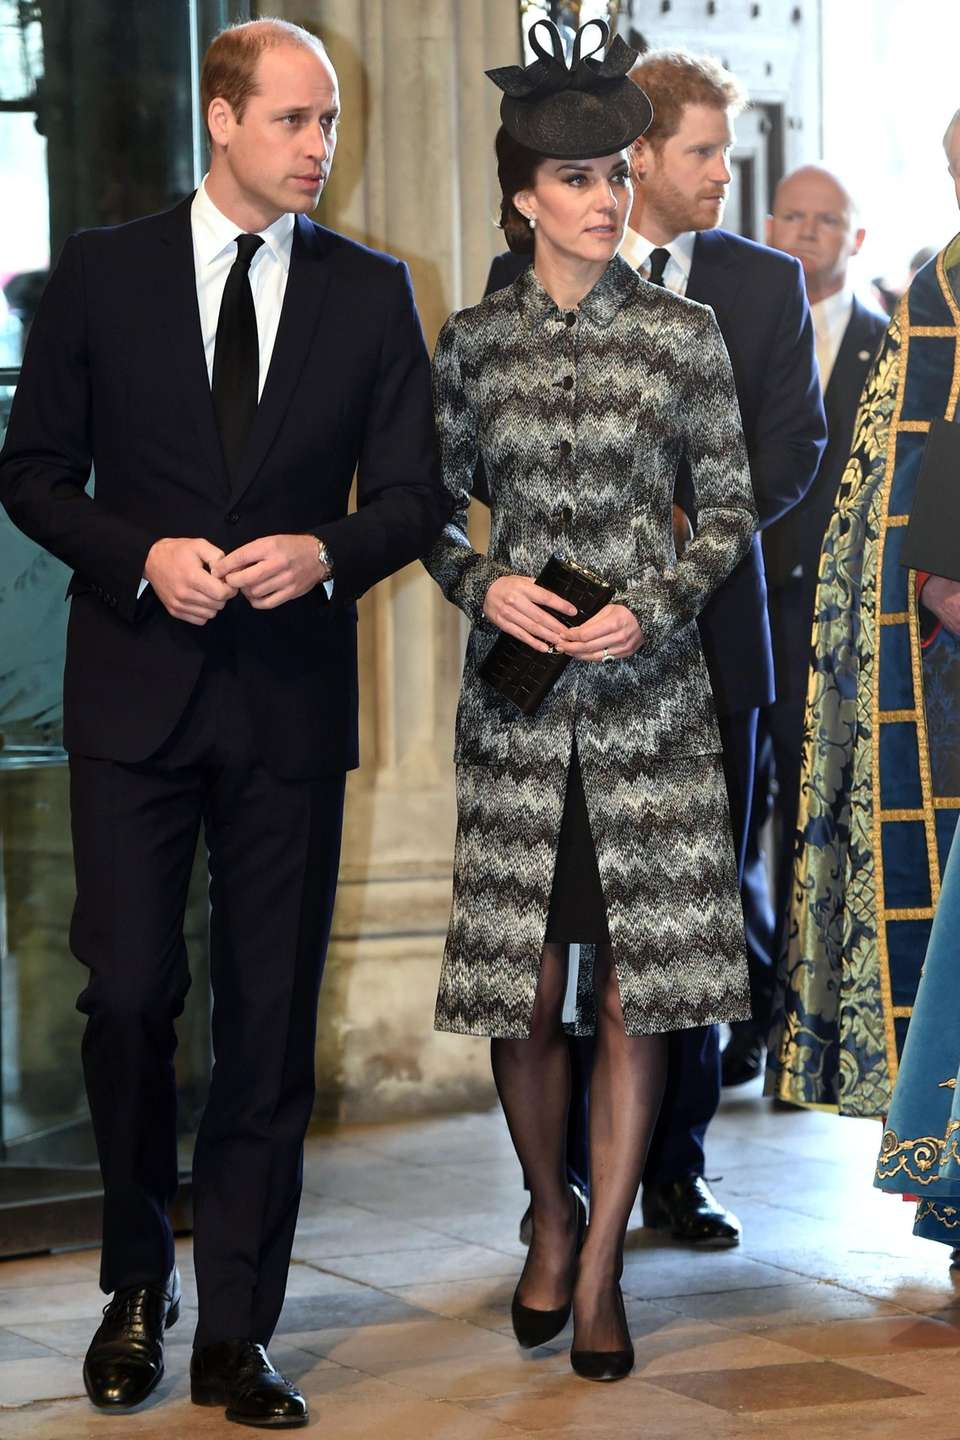 Prince William and Kate arrive at a